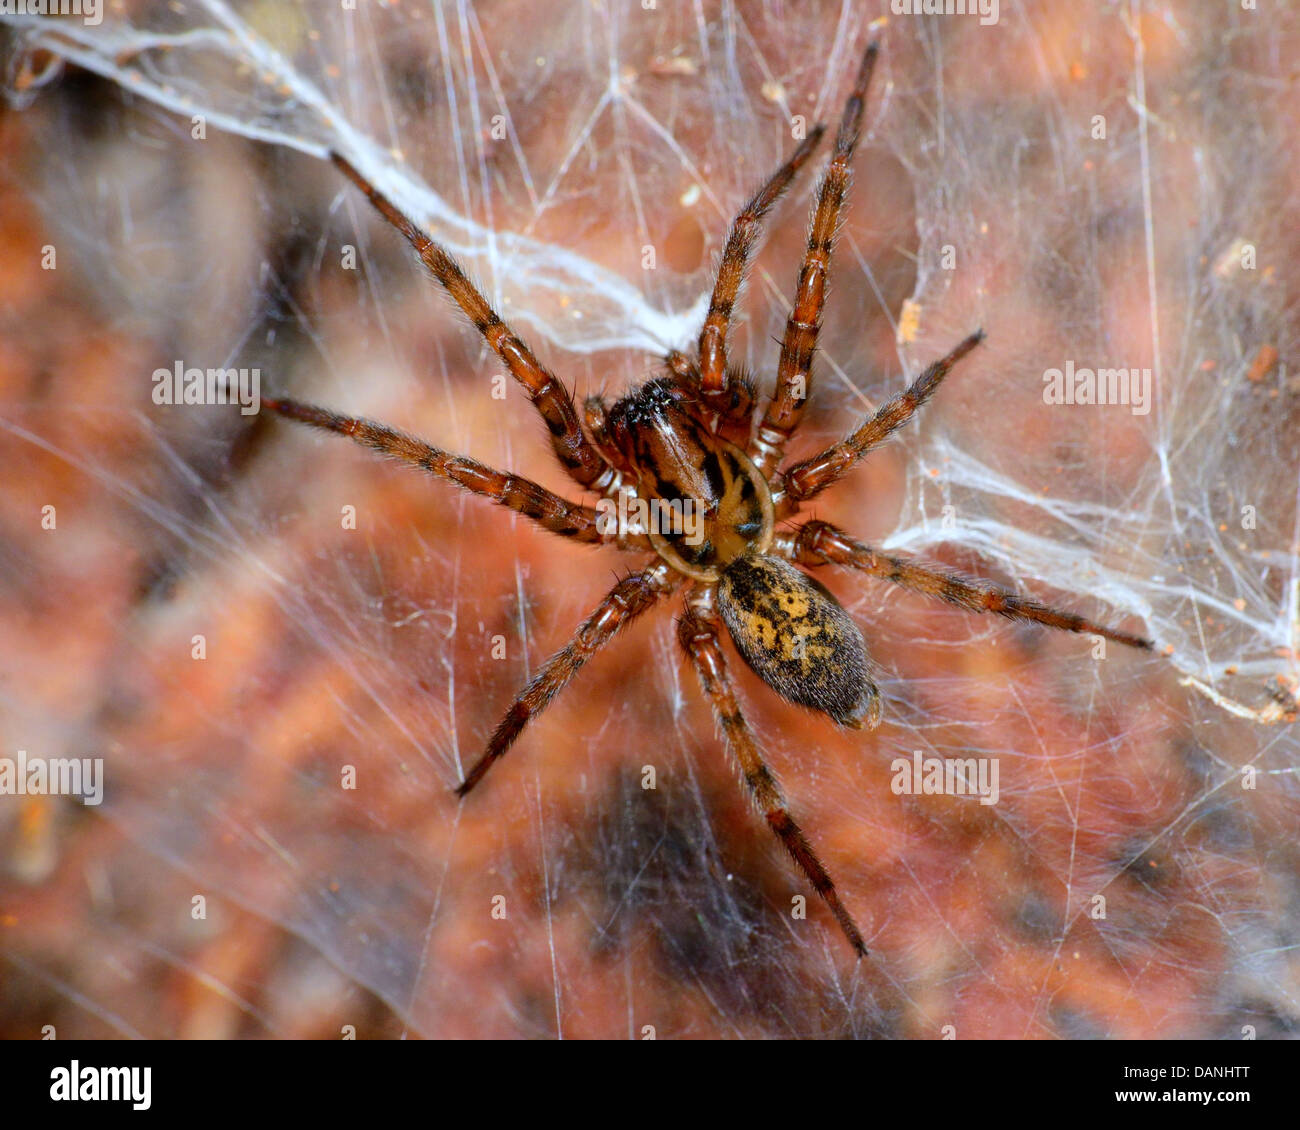 A wolf spider perched on a spider web. - Stock Image